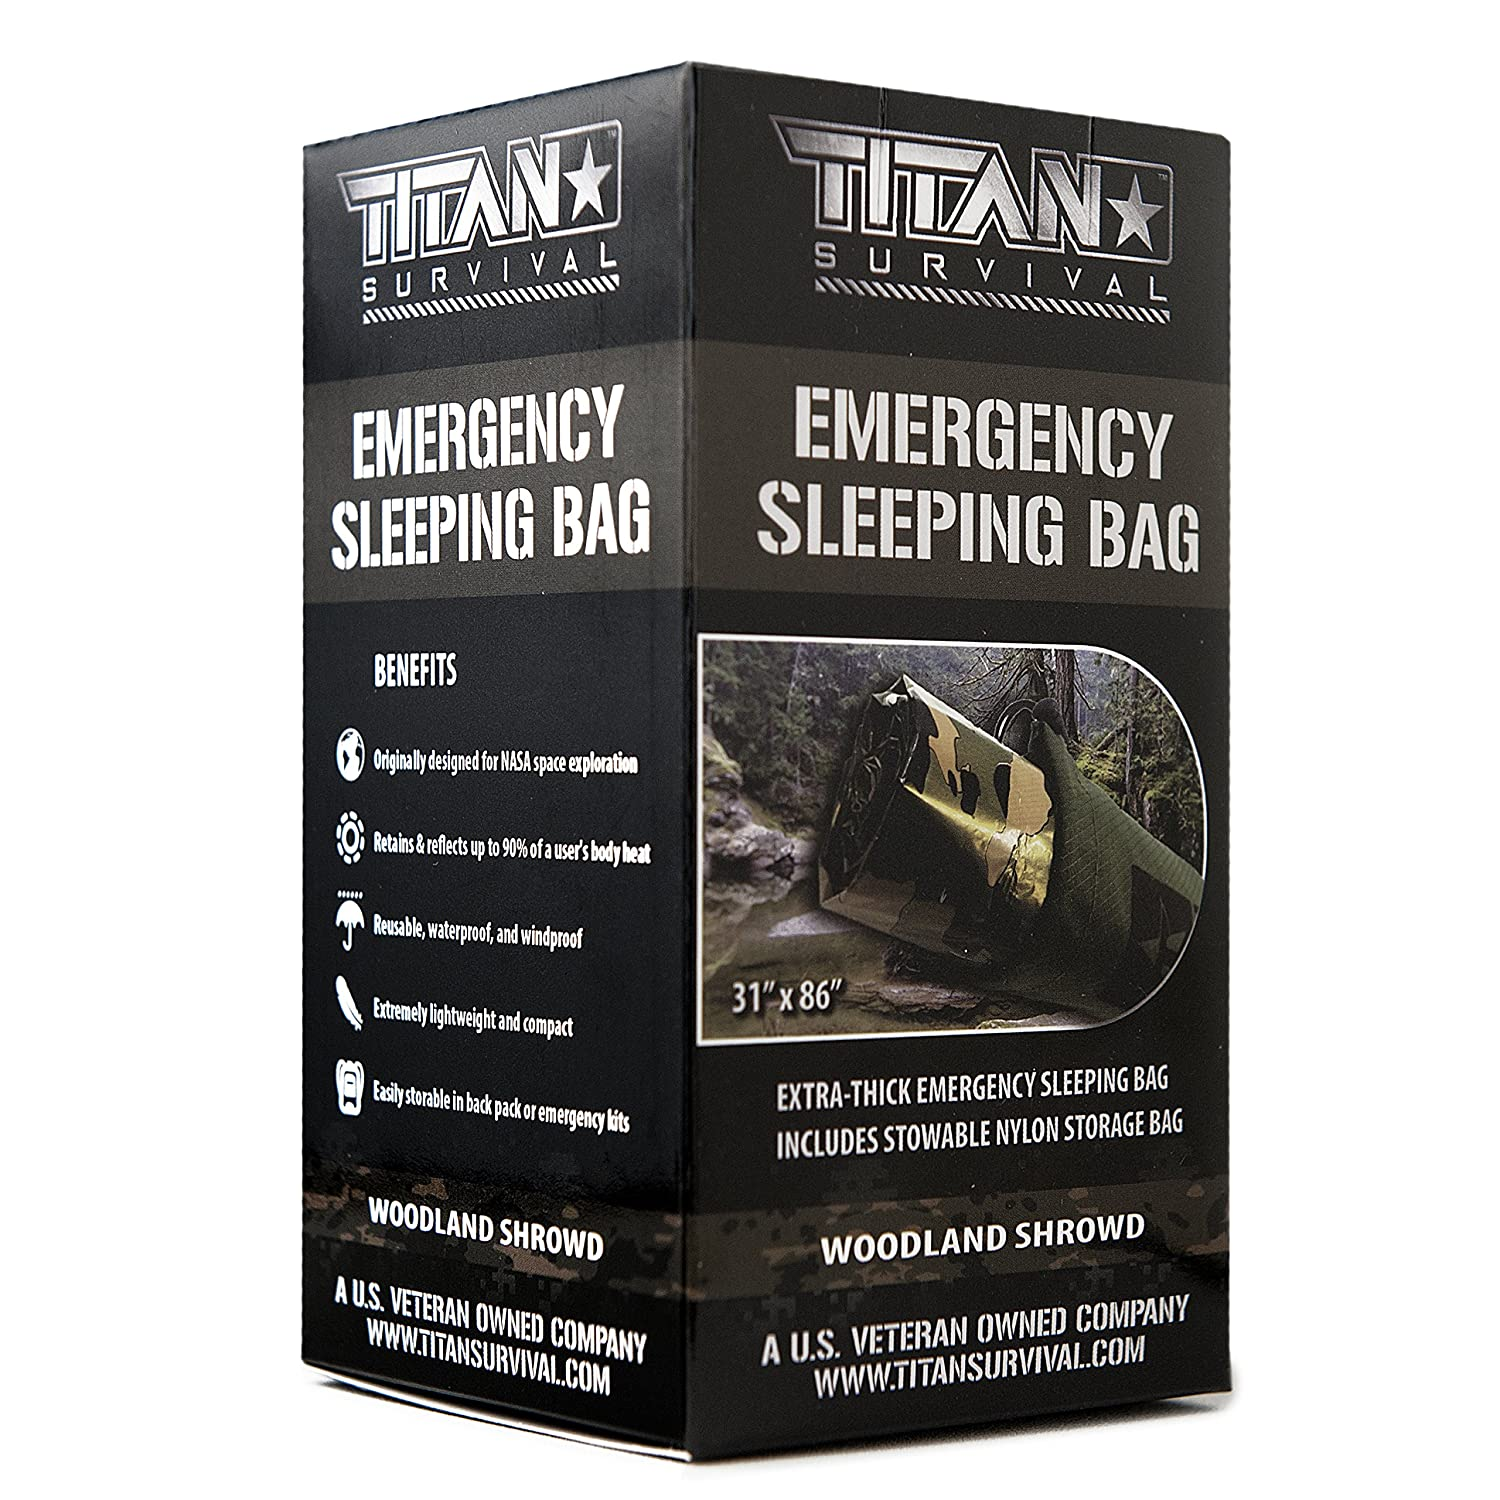 TITAN Extra-Thick Emergency Mylar Sleeping Bag | Designed for NASA Space Exploration and Heat Retention. Perfect for Survival Kits and Go-Bags. Includes Nylon Drawstring Bag and eBooks. Dark-Earth (28-000001) TITAN Paracord